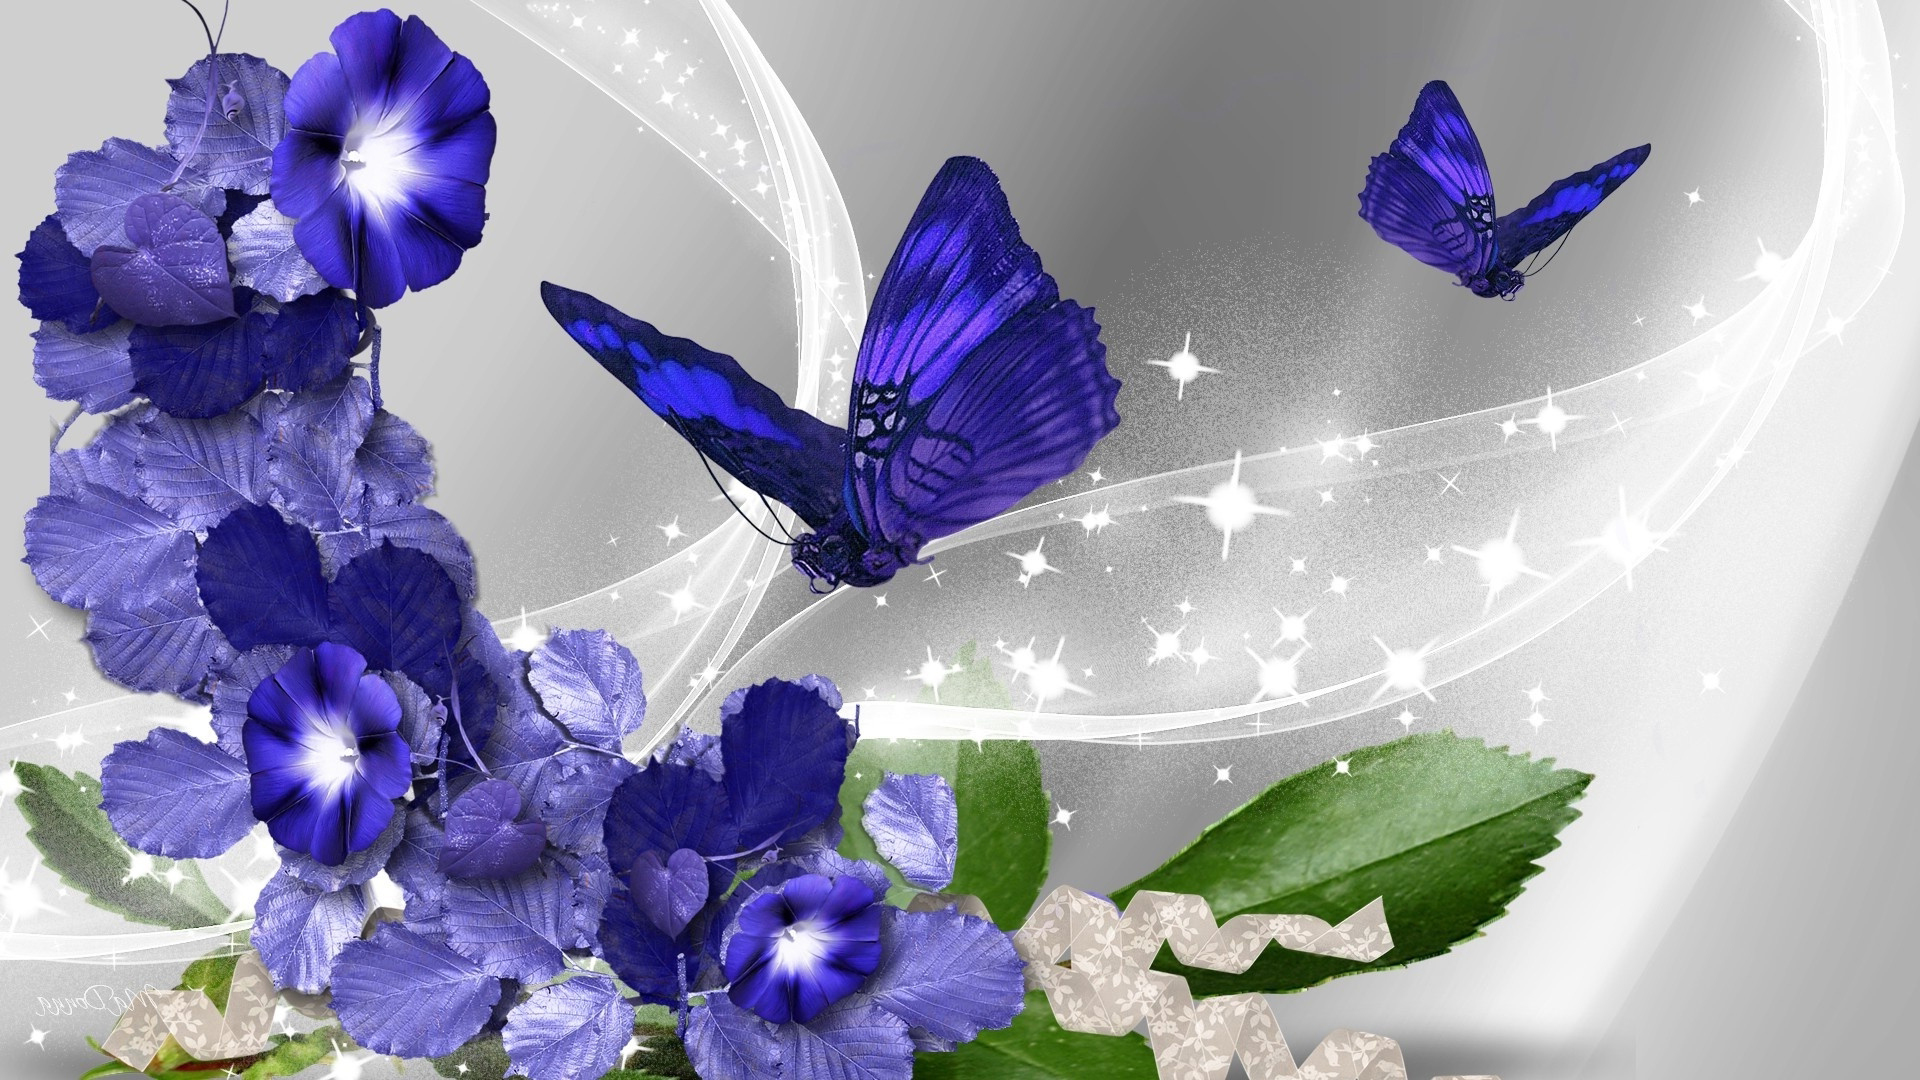 Pictures Of Blue Flowers And Butterflies With Abstract